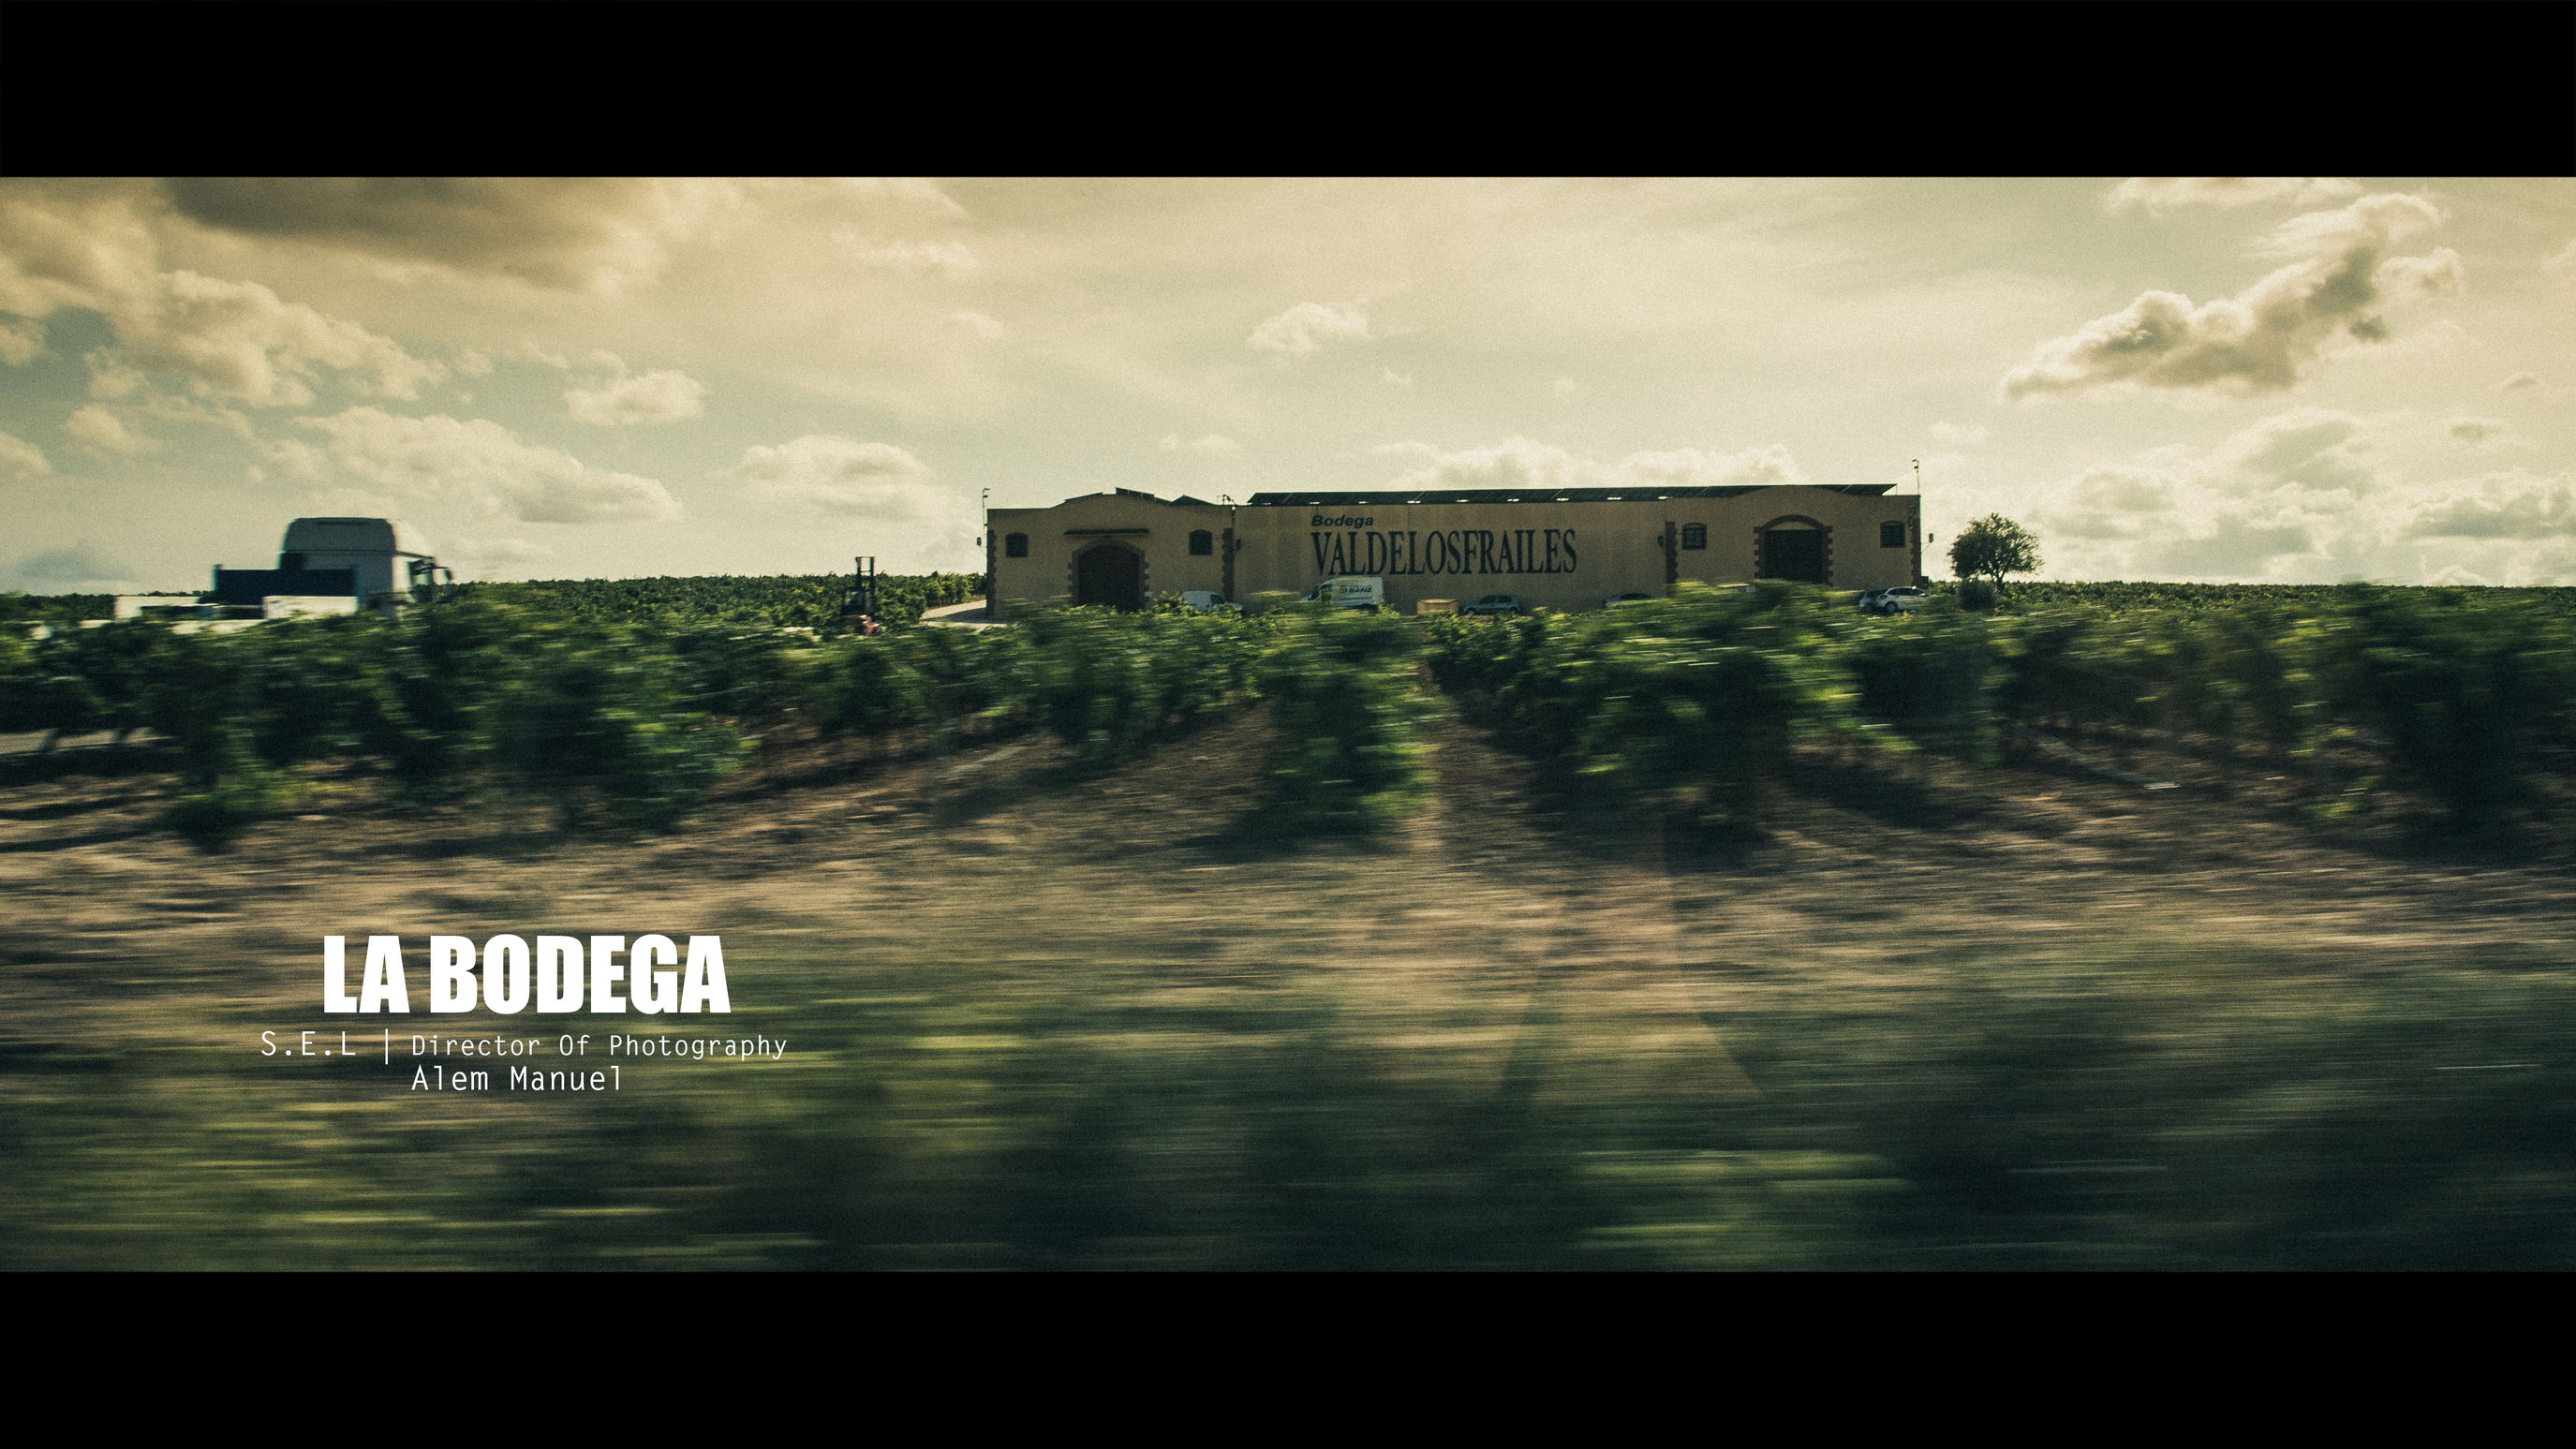 #Bodegadoveio #bodegasiniesta #fincaelcarril #fuentealbilla #cinematic #drinks #sunset #sun #clouds #skylovers #sky #nature #beautifulinnature #naturalbeauty #photography #landscape #travel Outdoors